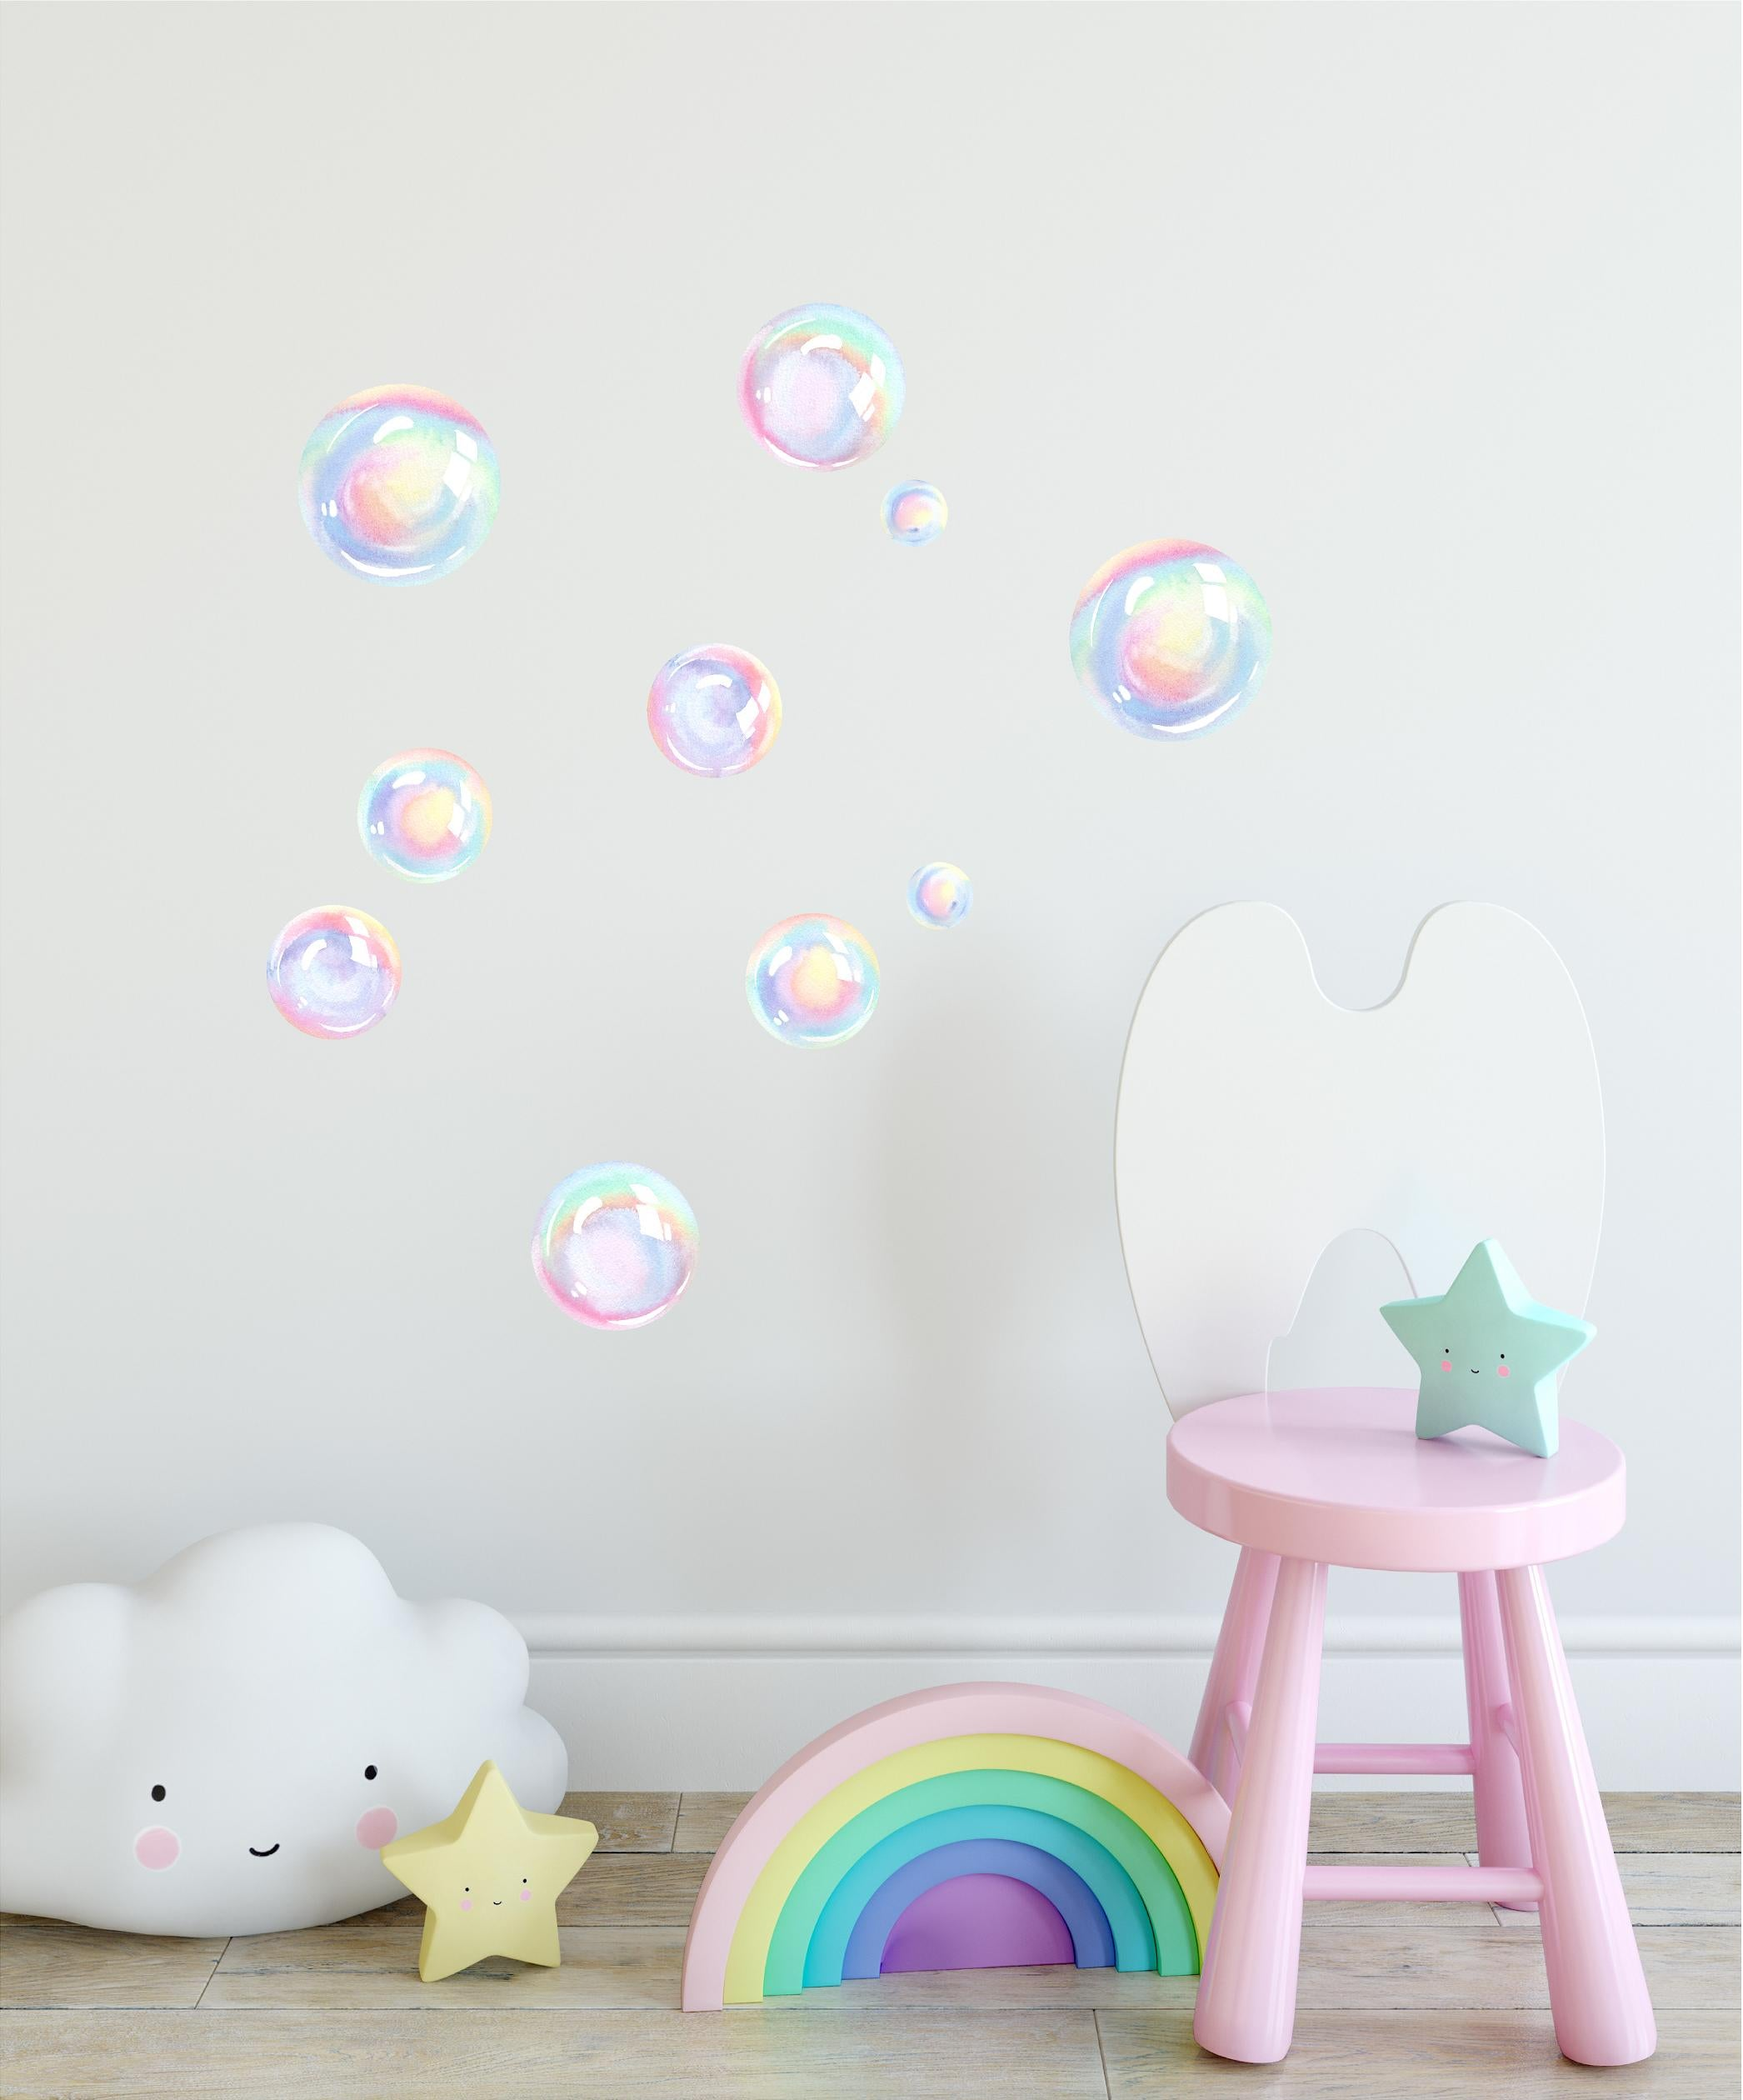 Watercolor Rainbow Bubbles Wall Decal Set Bubbles Wall Stickers Wall Art Nursery Decor Removable Fabric Vinyl Wall Stickers SIZE SMALL | DecalBaby